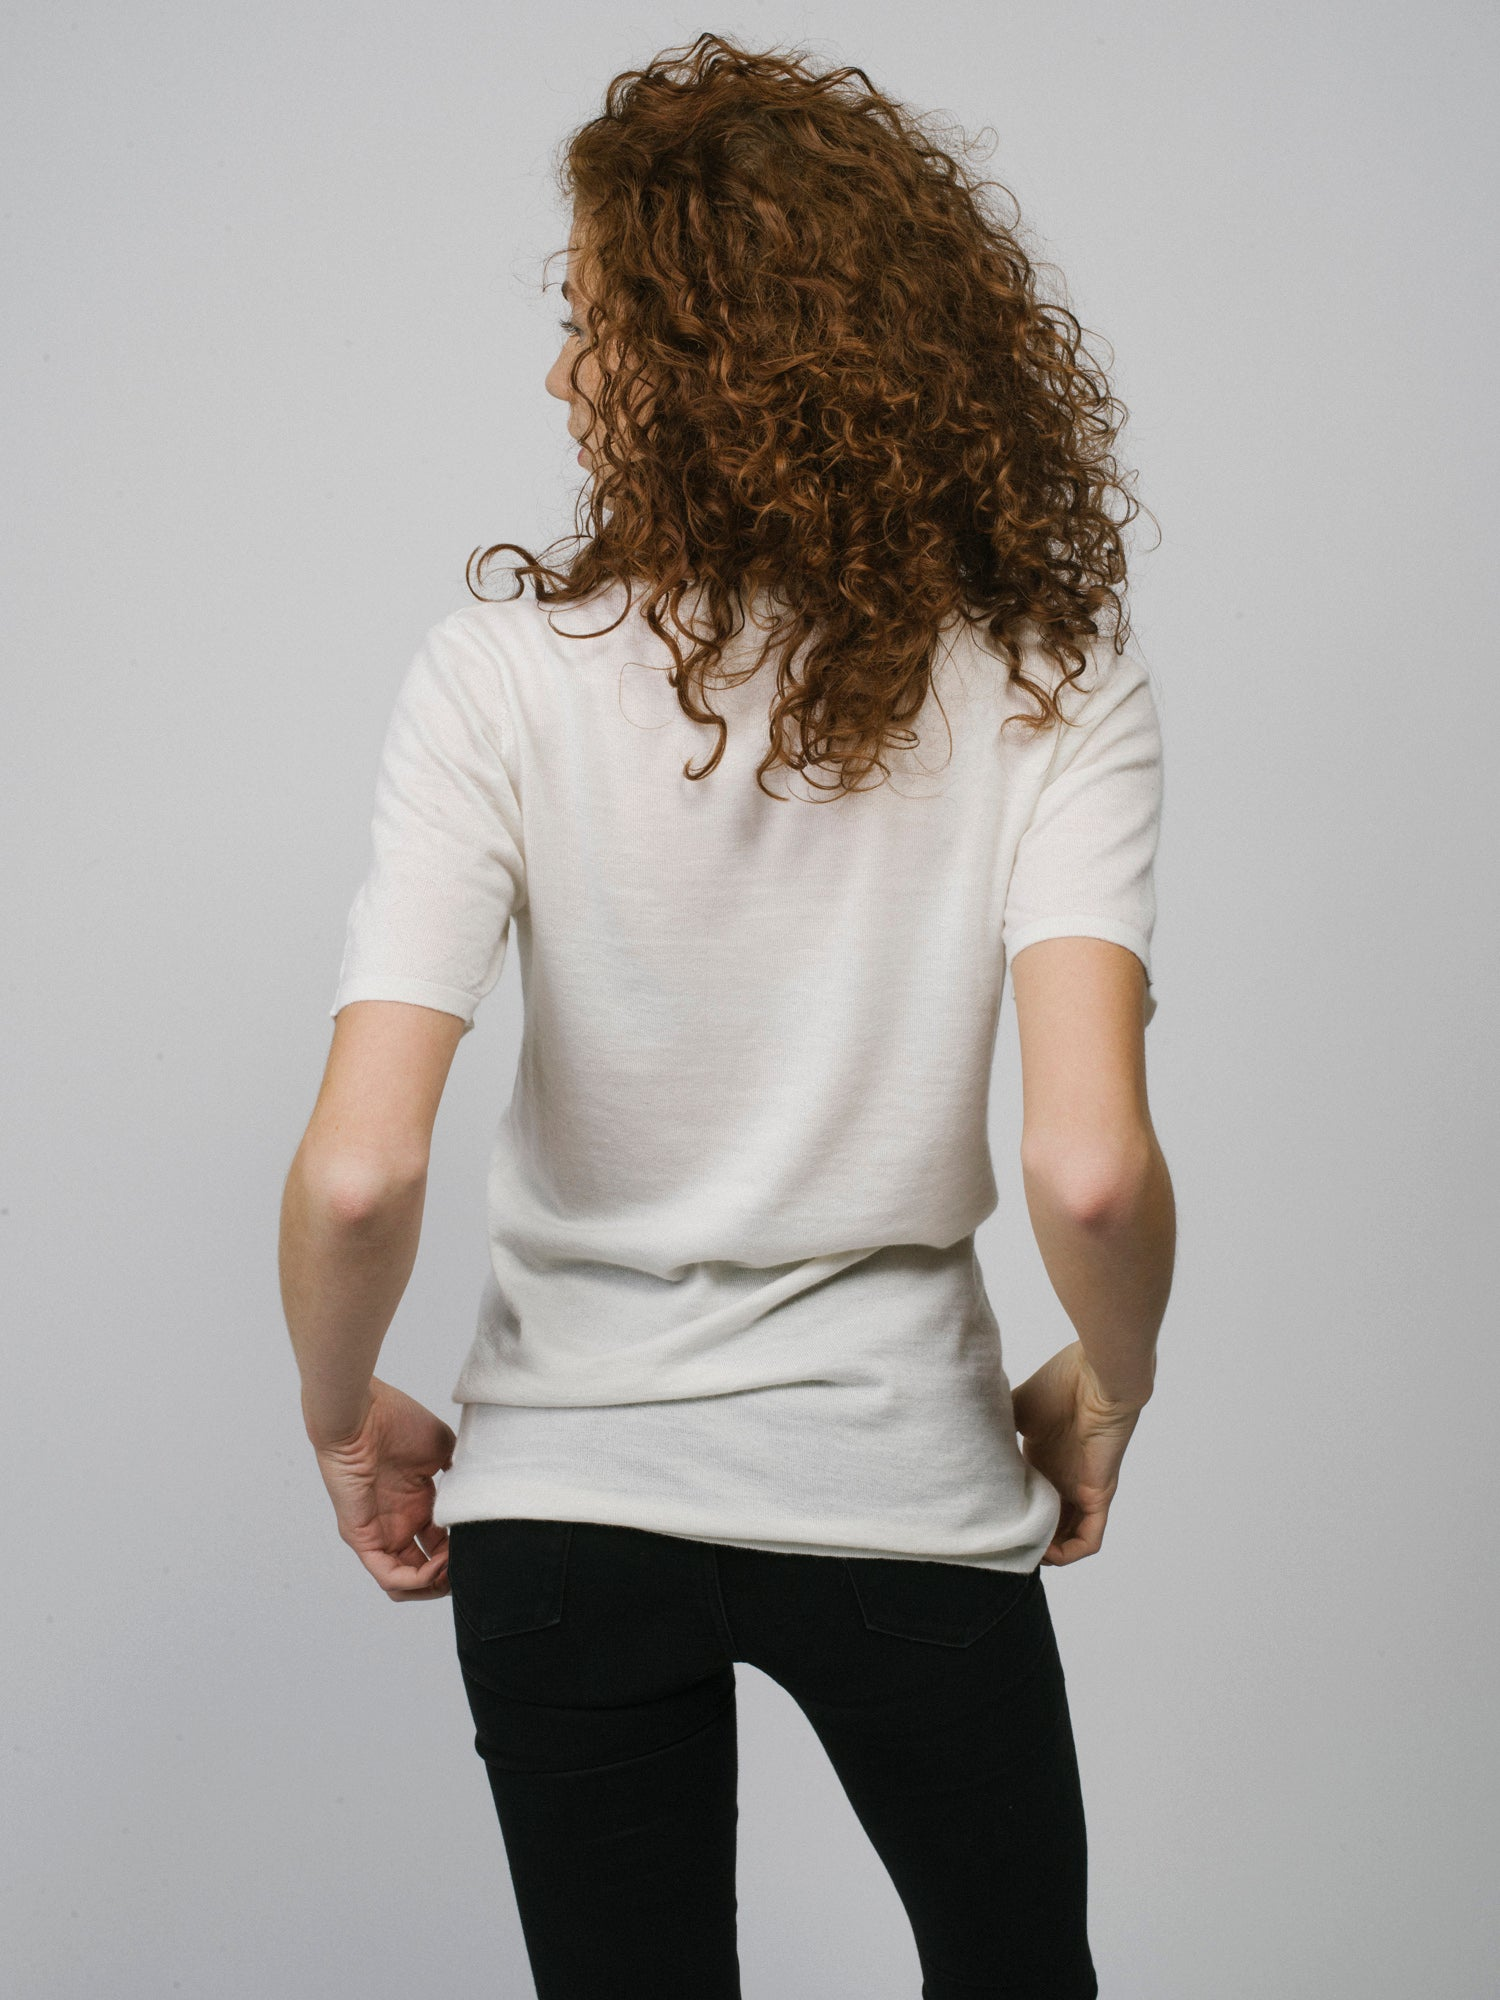 100% Cashmere T-Shirt - Women's Off White